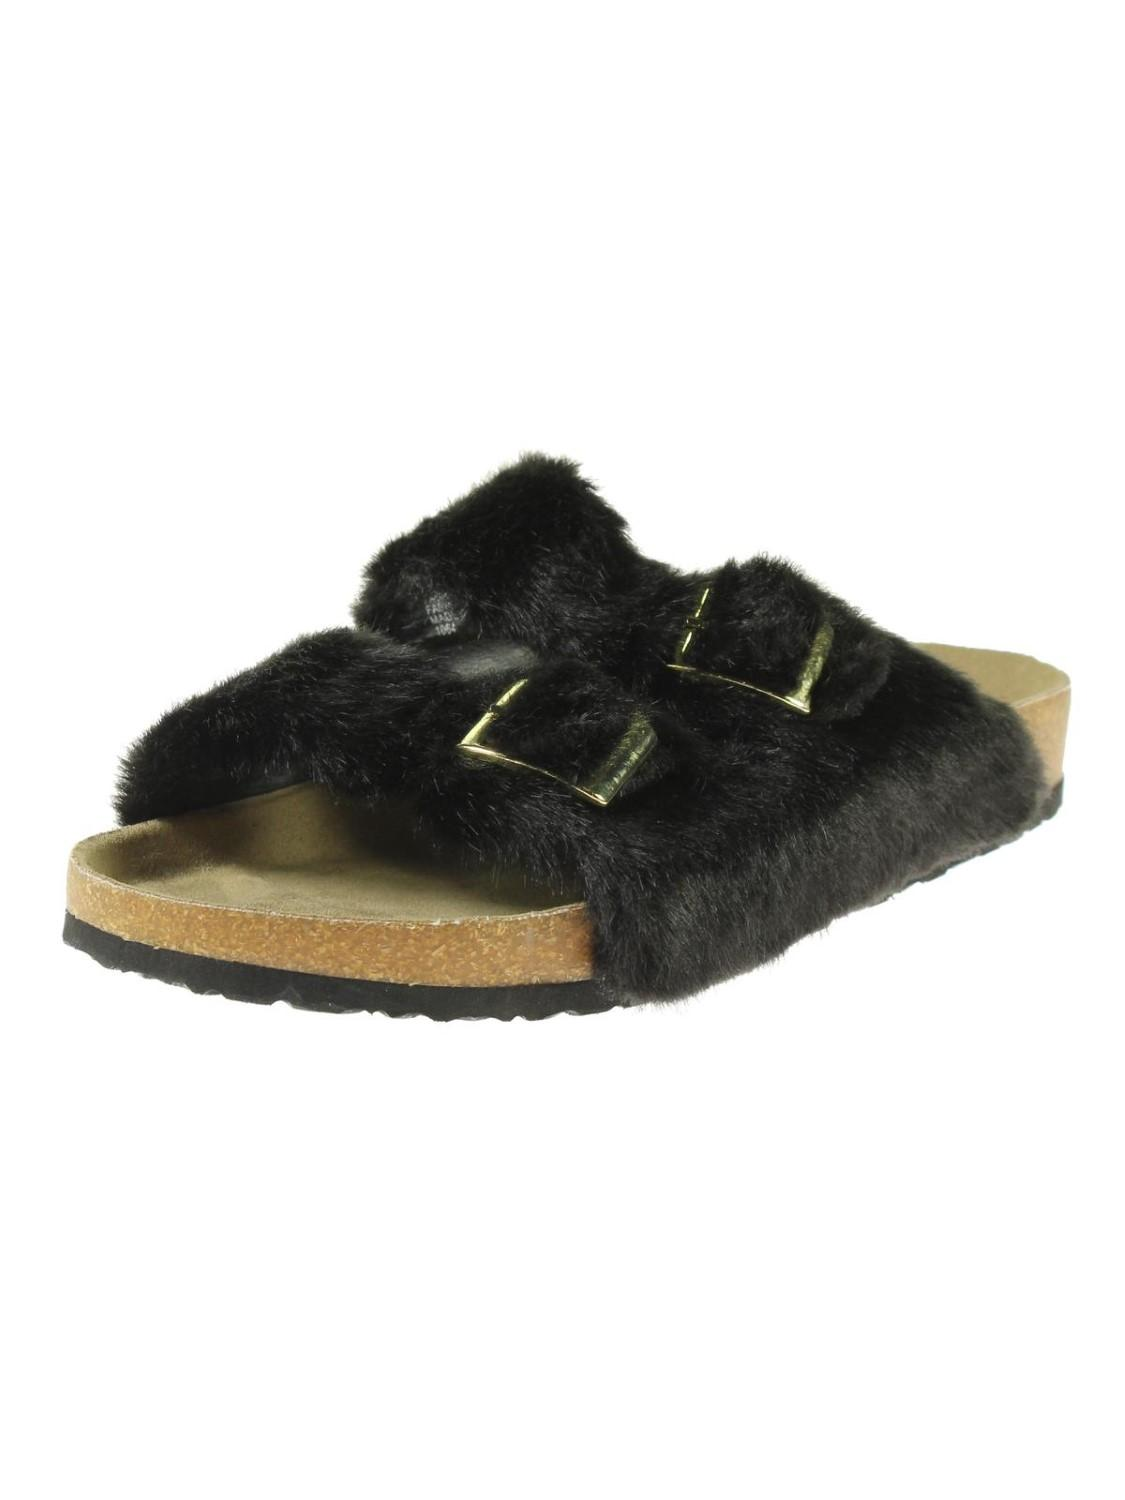 b1b8fe24235 Steve Madden. Women s Black Soul Faux Fur Double Strap Slide Sandals